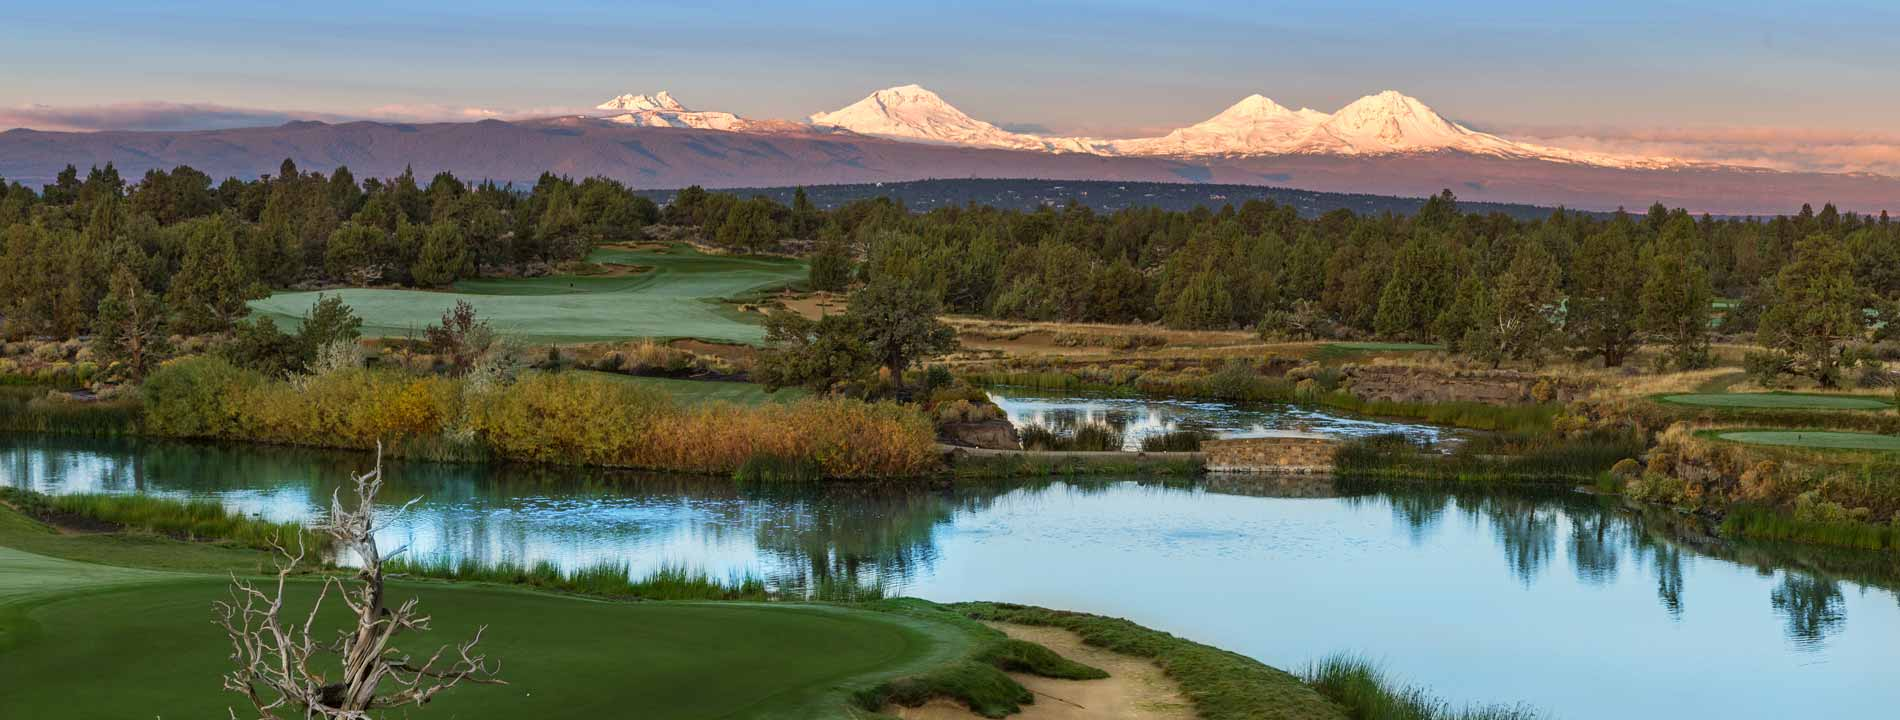 The high peaks surrounding Pronghorn Resort stay covered in snow year-round.